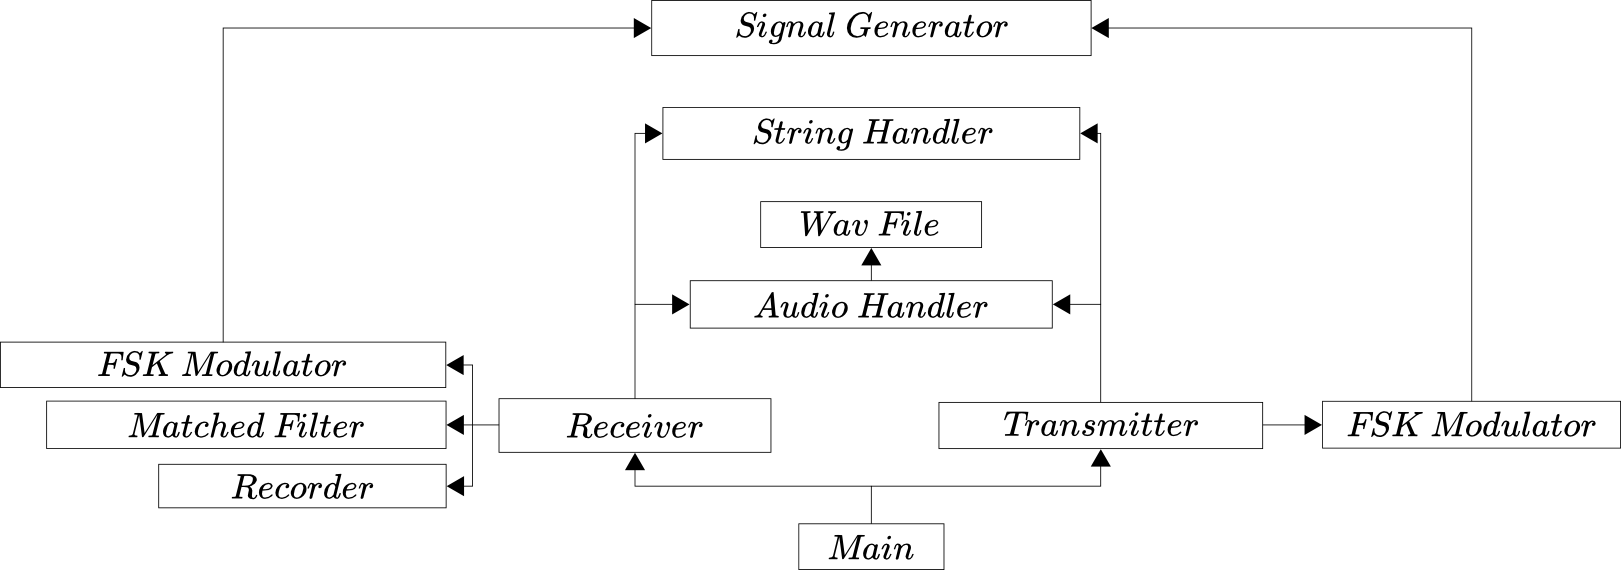 github  redtooth  android based implementation of acoustic data transmission system